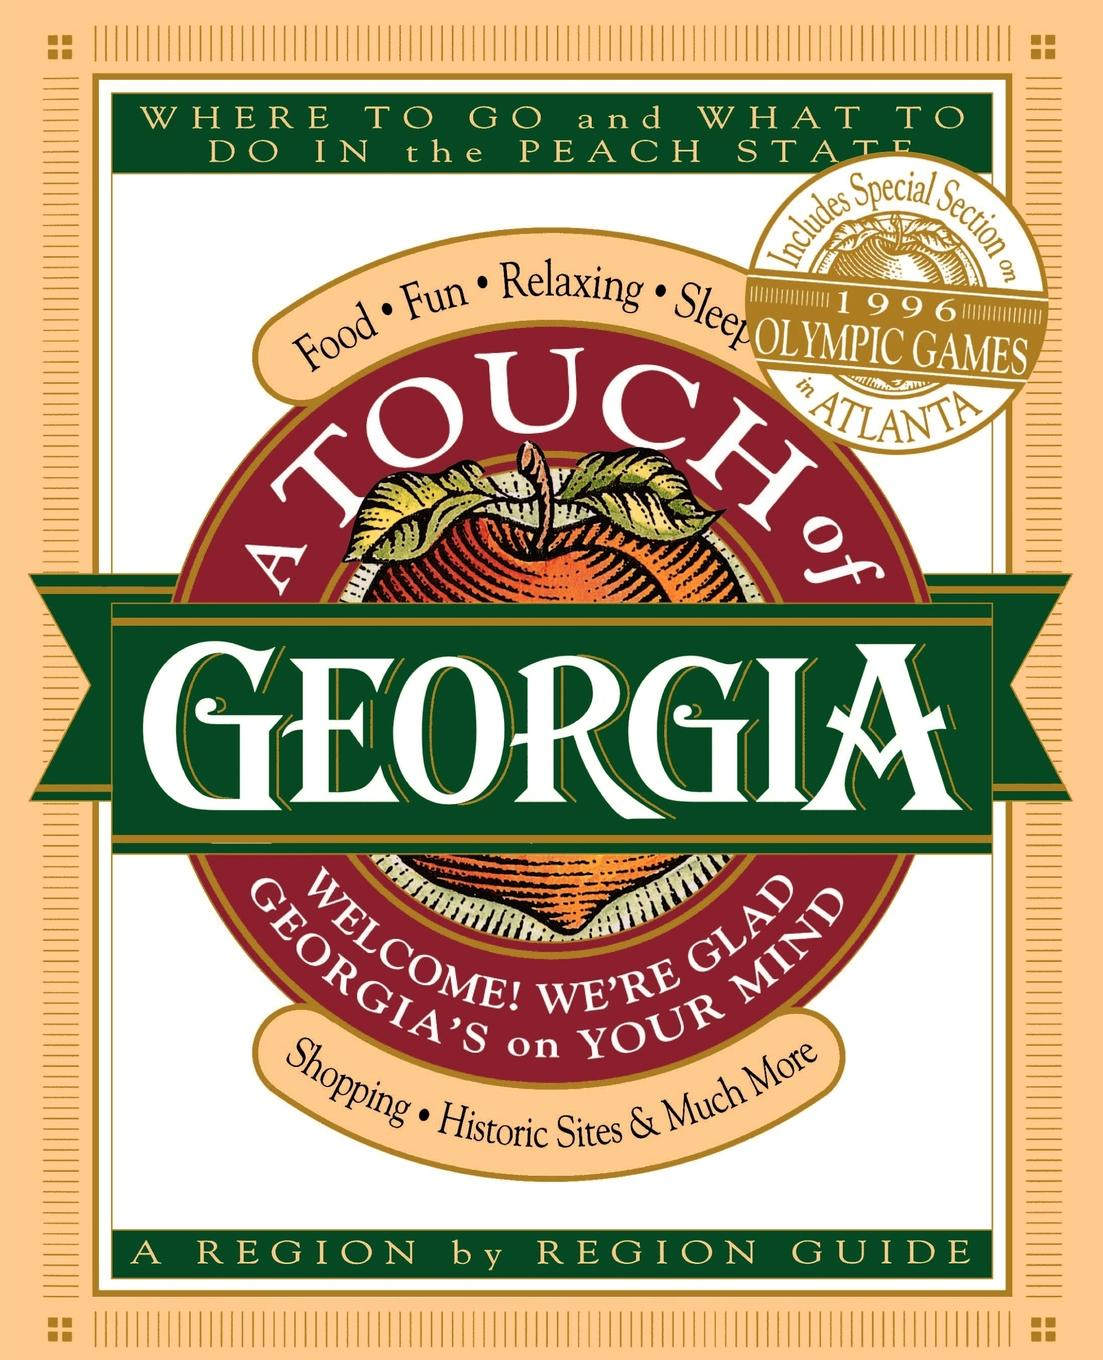 цена Thomas Nelson Publishers, Cecil B. Murphey A Touch of Georgia. Where to Go and What to Do in the Peach State онлайн в 2017 году